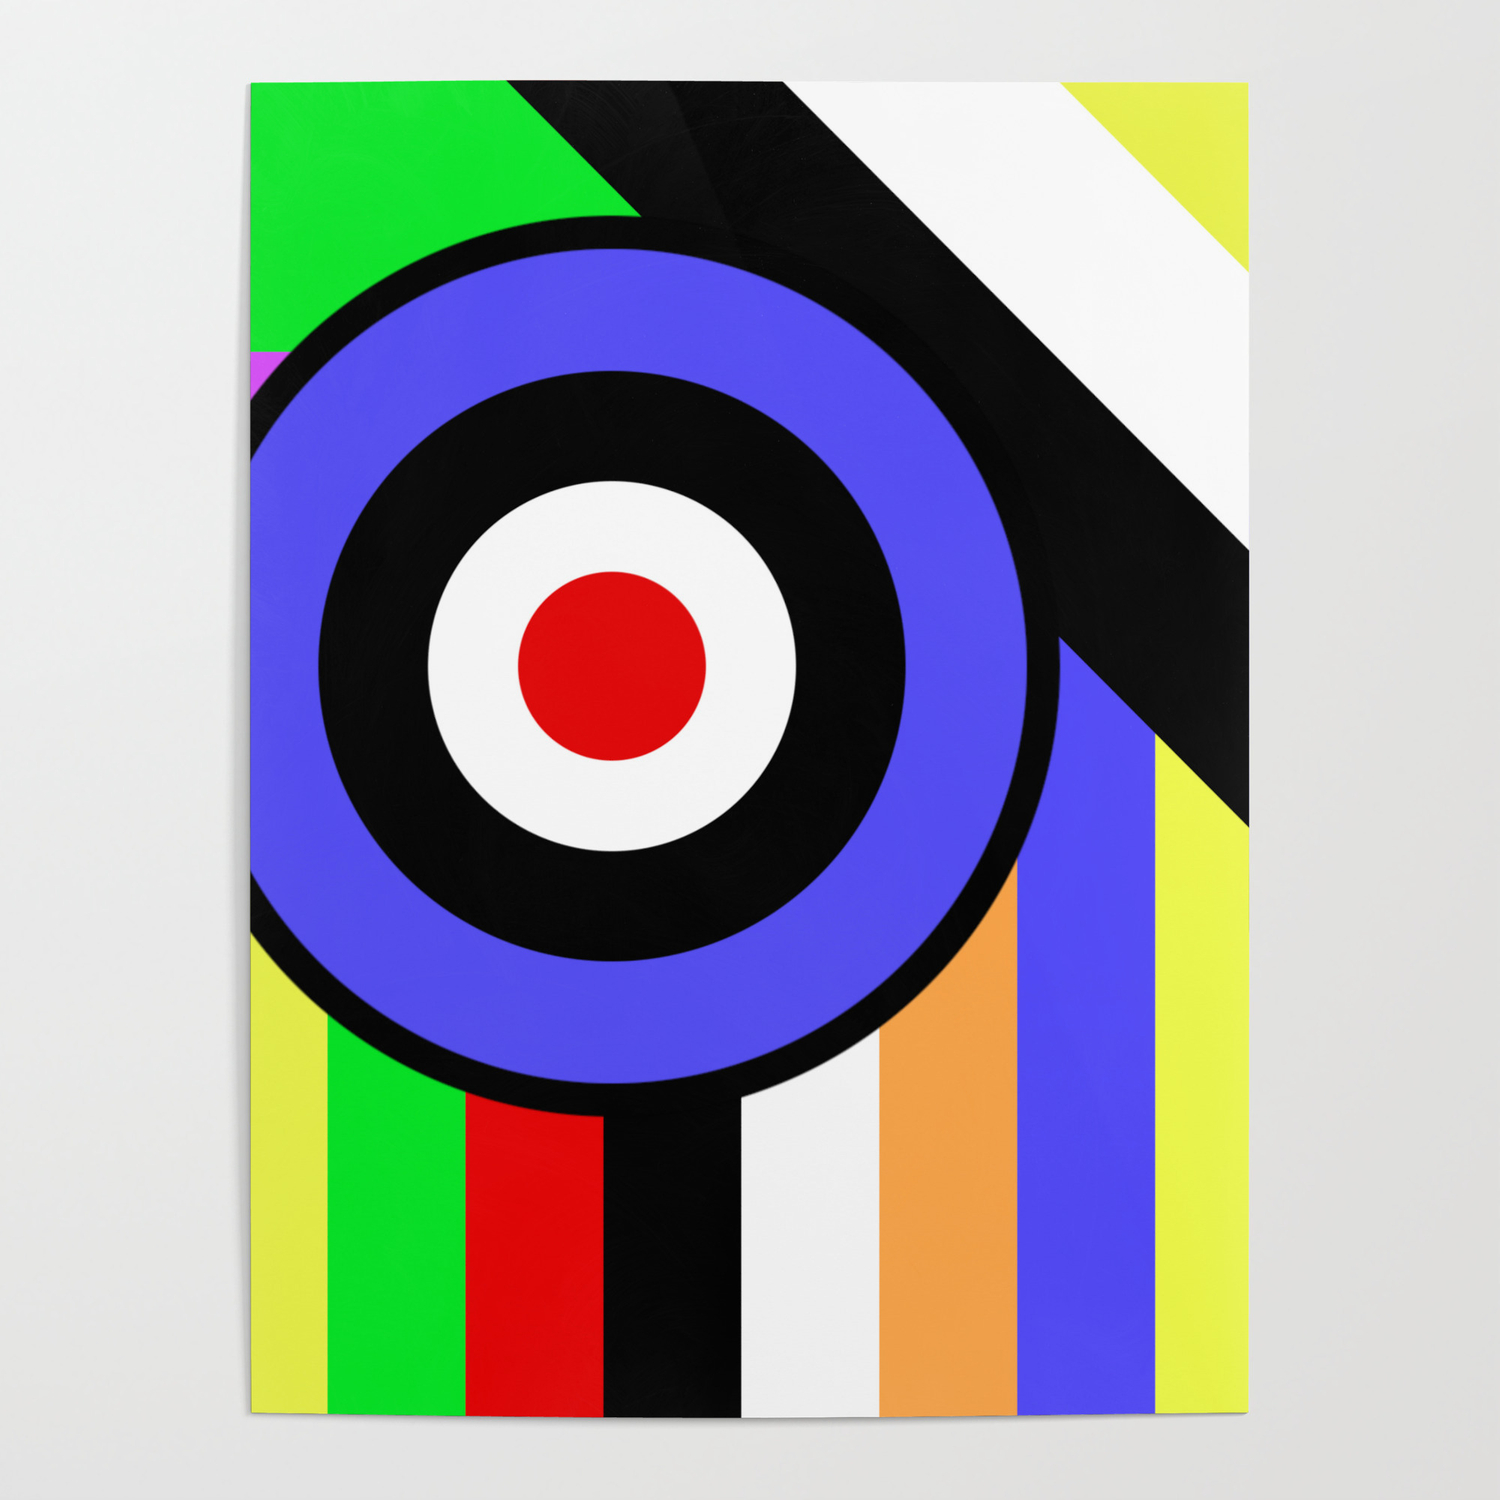 Bold Geometry - Abstract, Geometric, Retro Art Poster by printpix